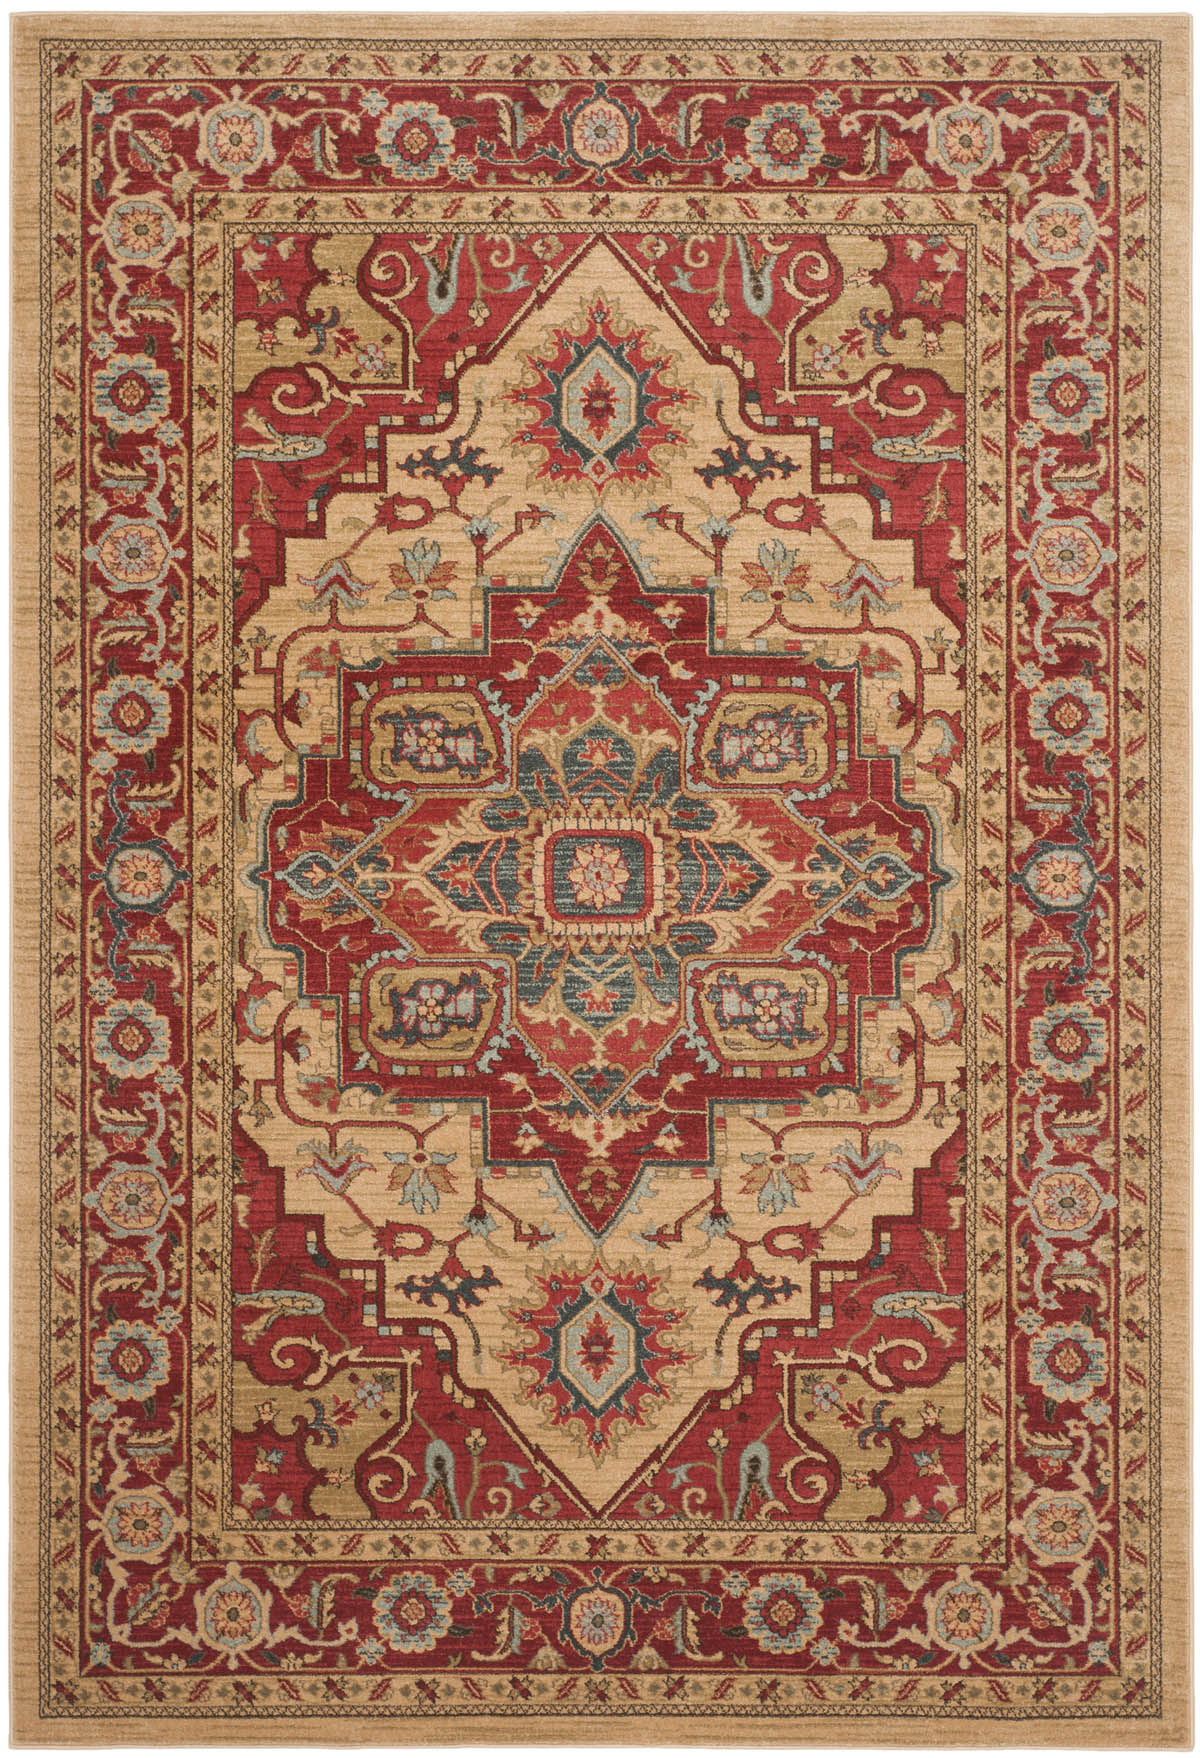 Safavieh Mahal Mah698a Red And Natural Area Rug Free